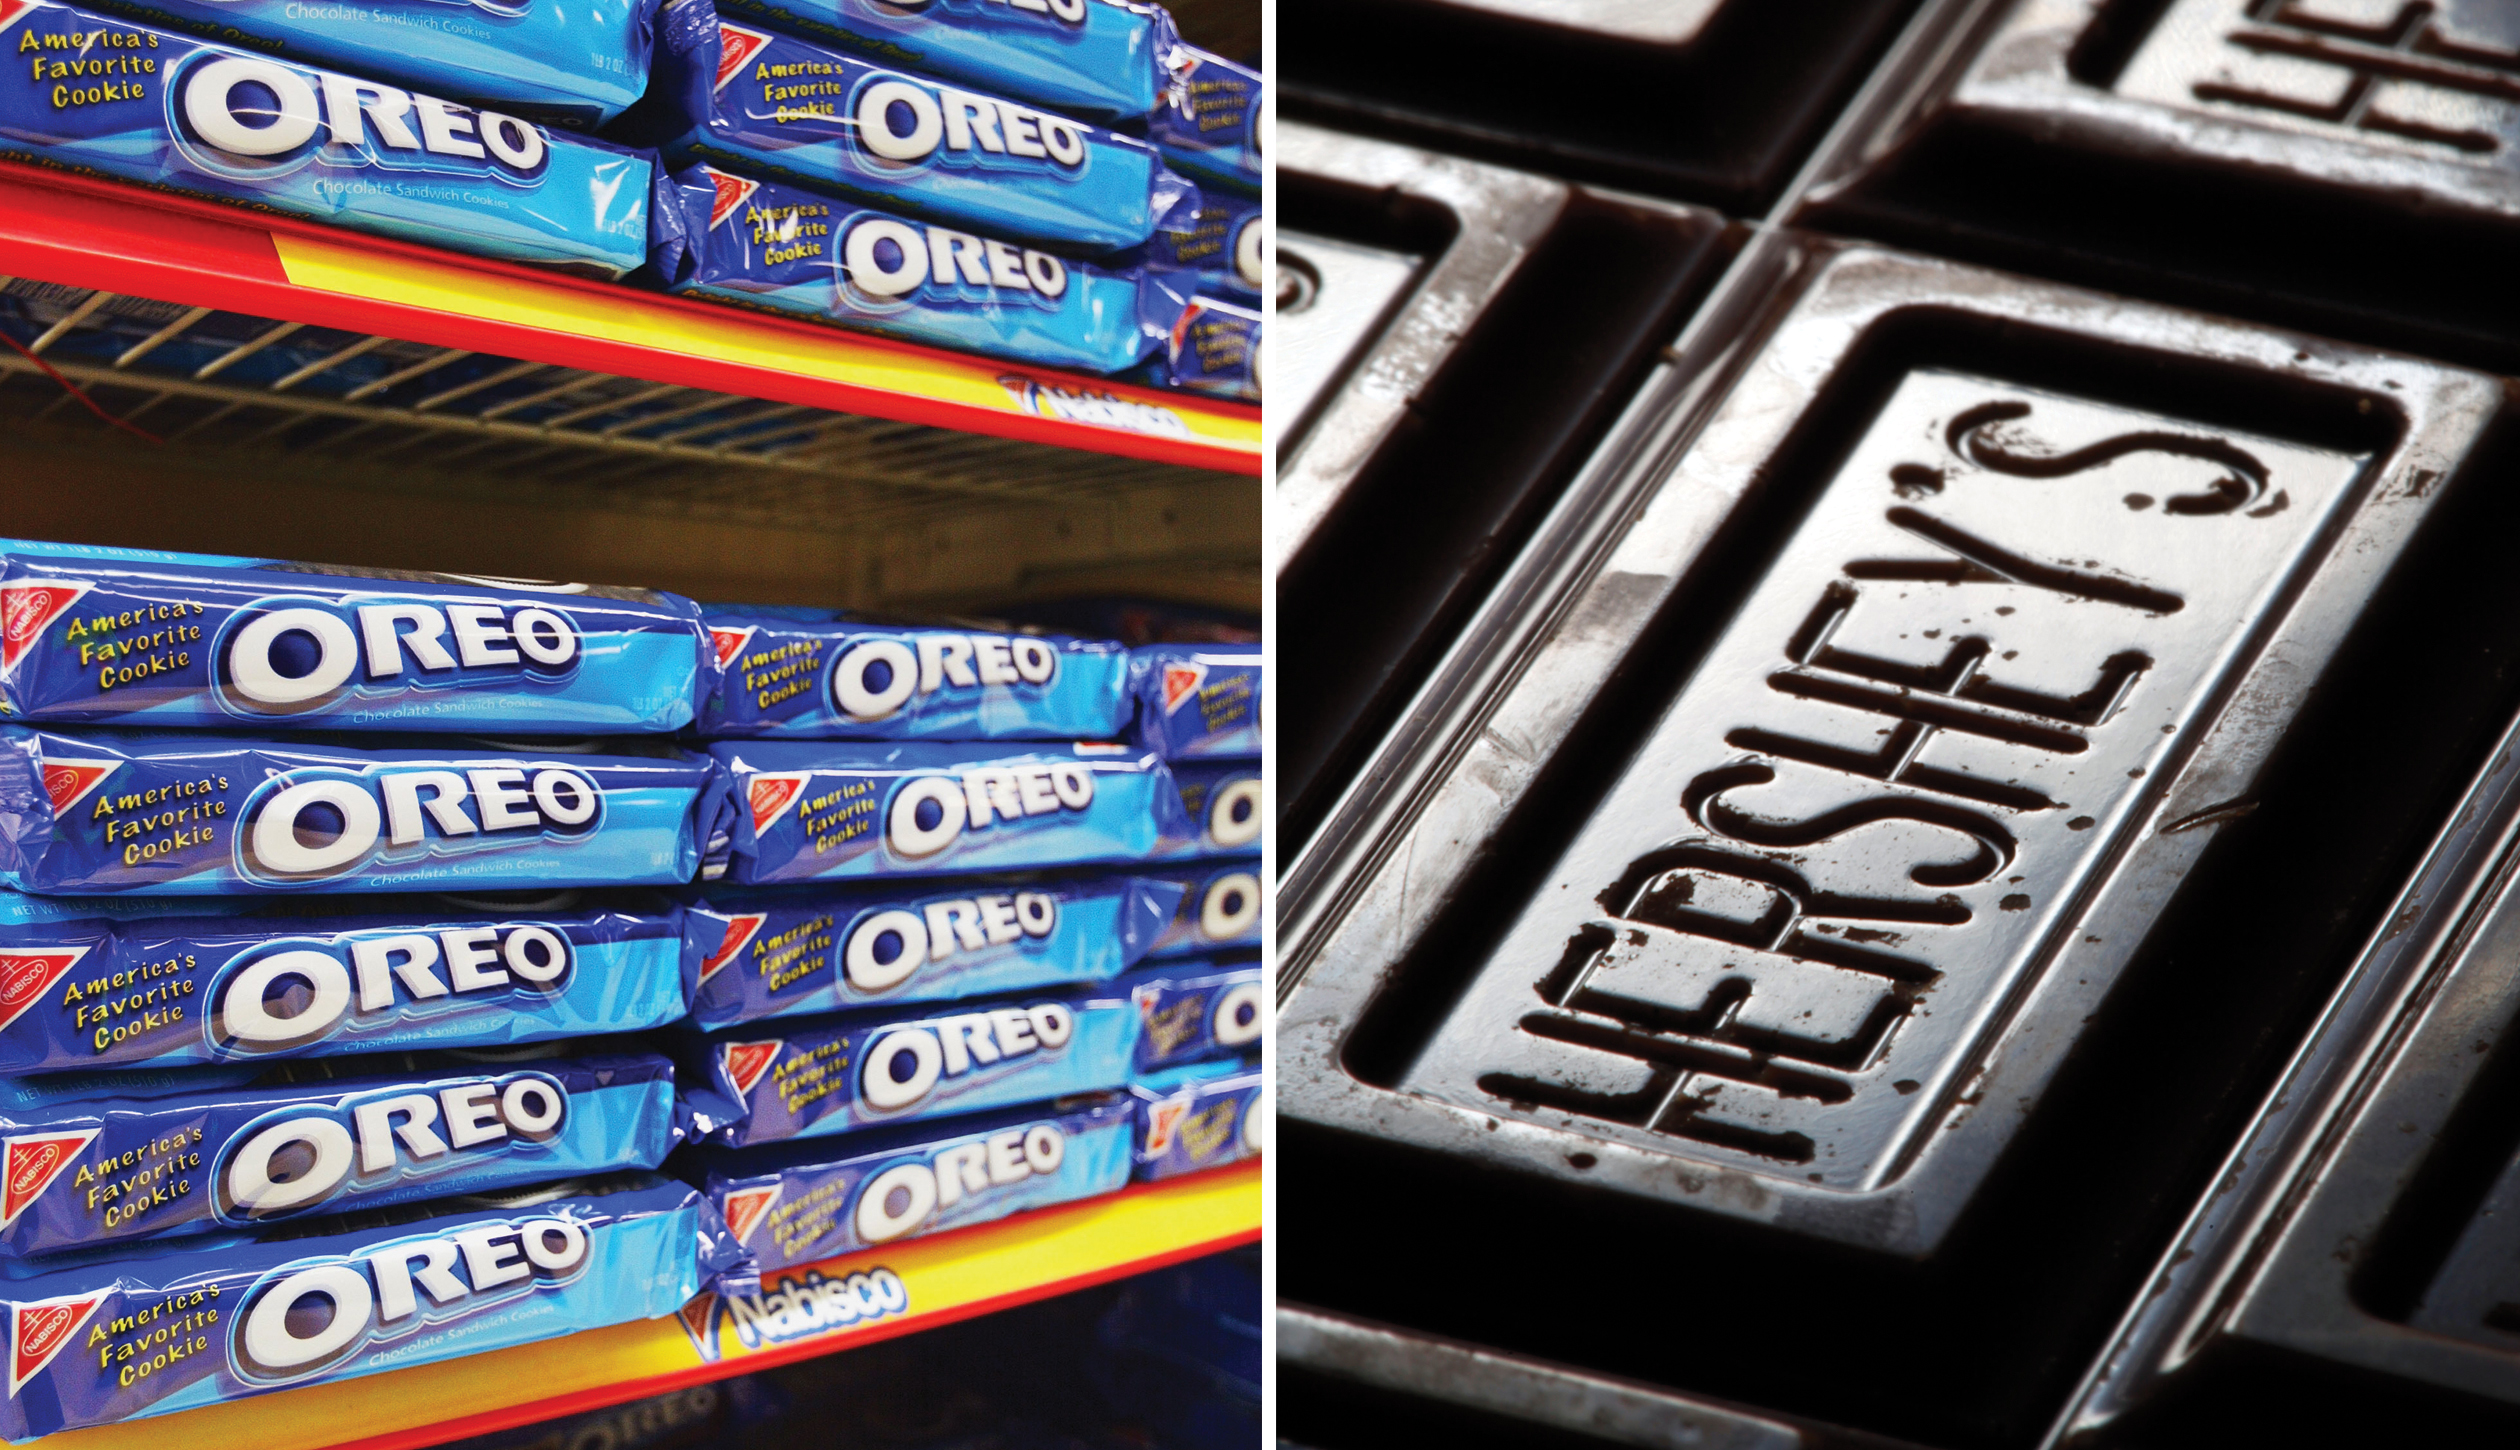 A rumored Big Food deal would combine Mondelez, owner of Oreo cookies, with chocolate maker Hershey.